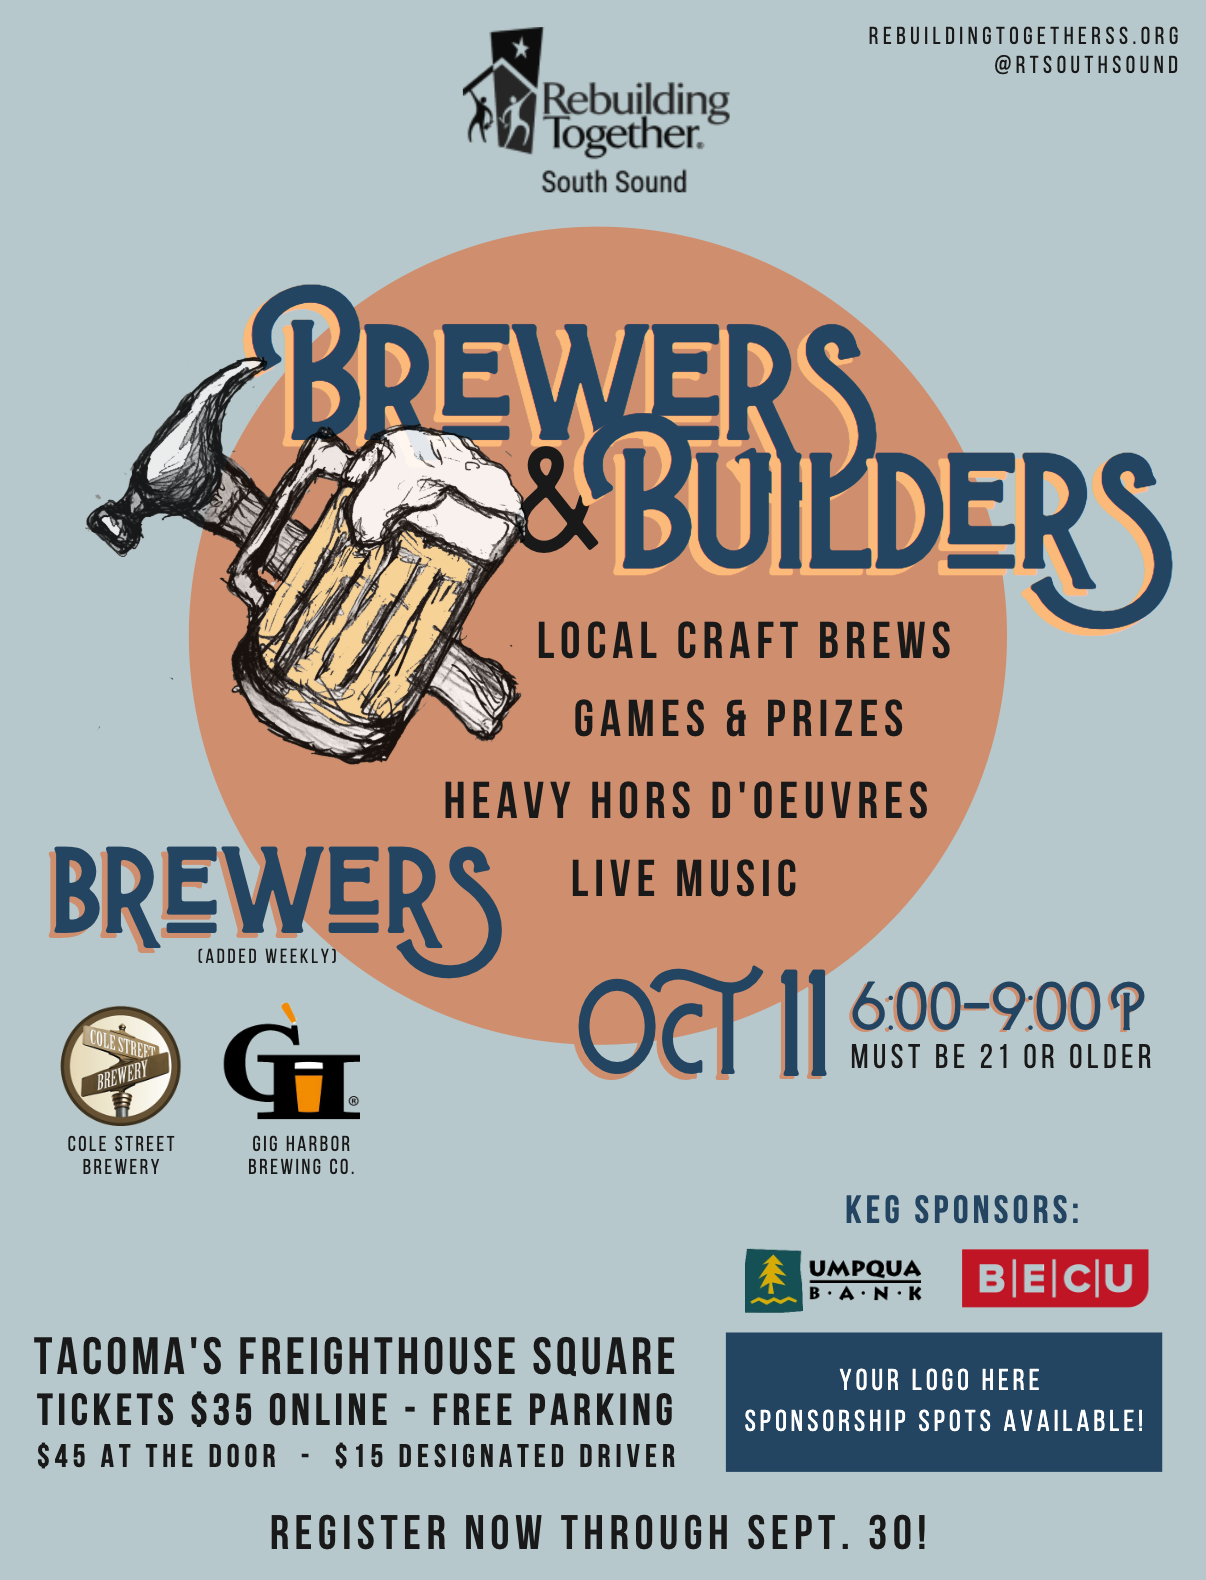 Brewers and Builders 2019 Poster Design by Sarah Gray